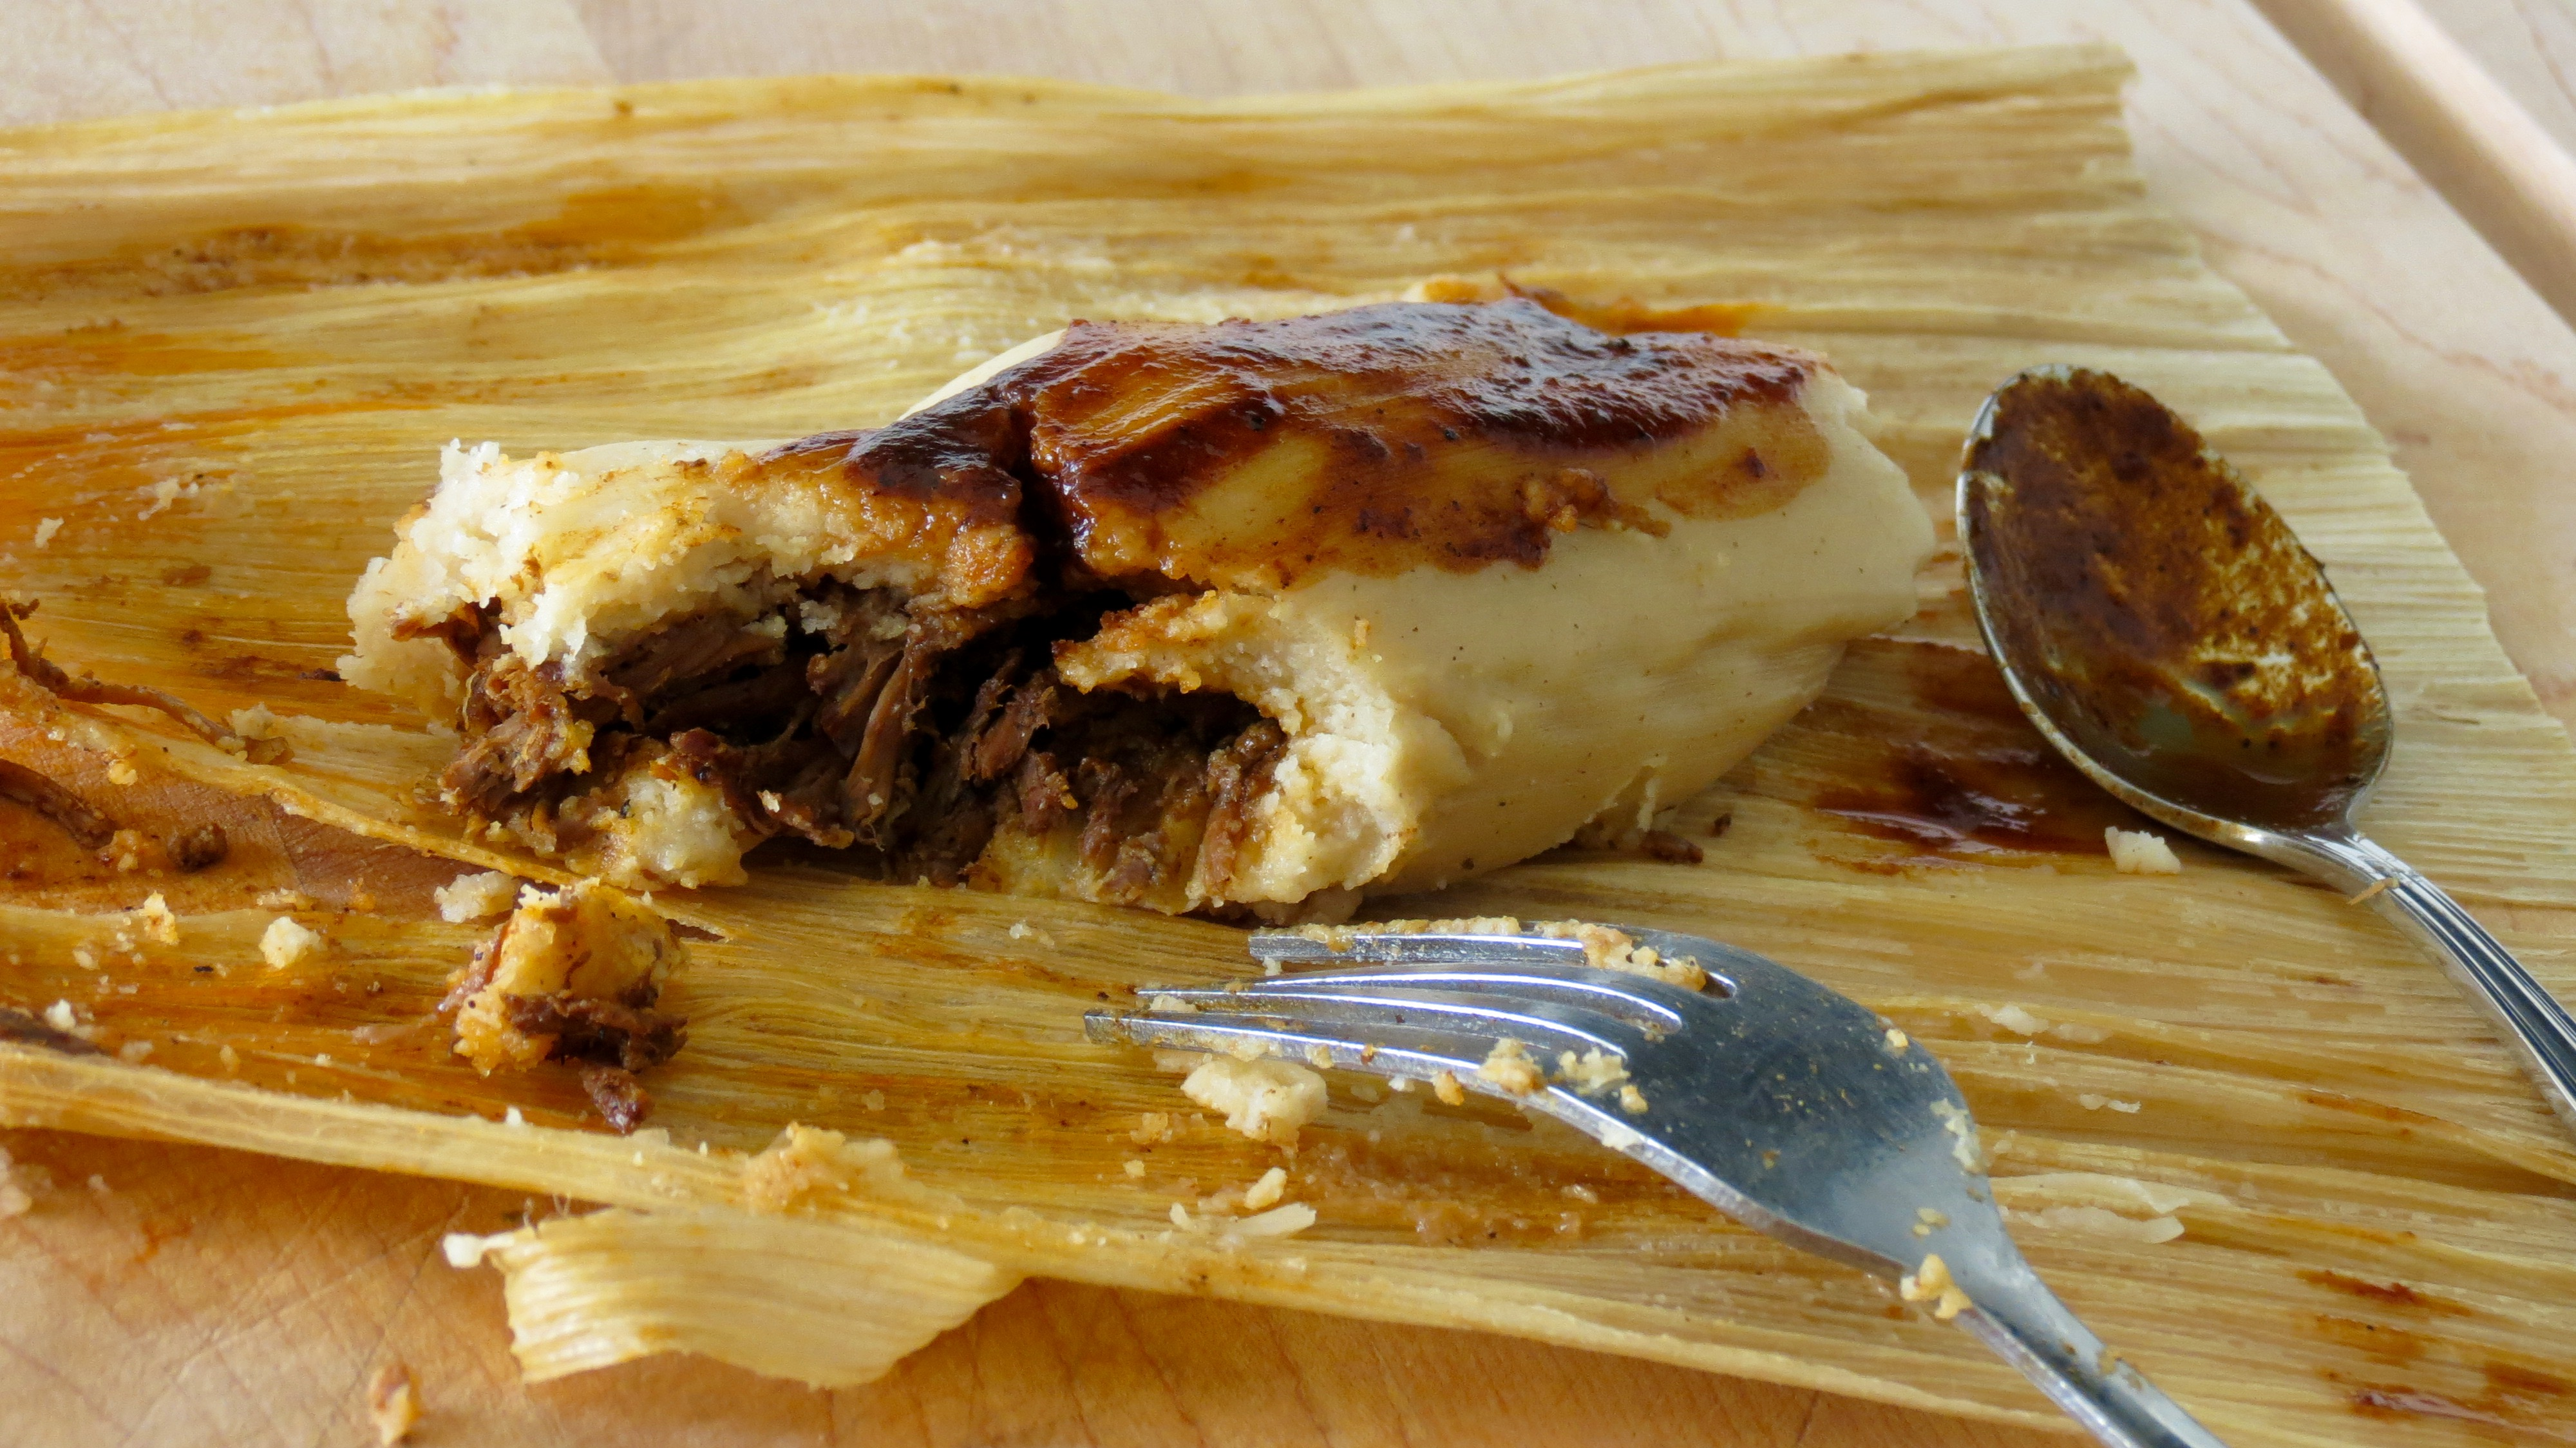 Tamale Recipe - The Frugal Chef